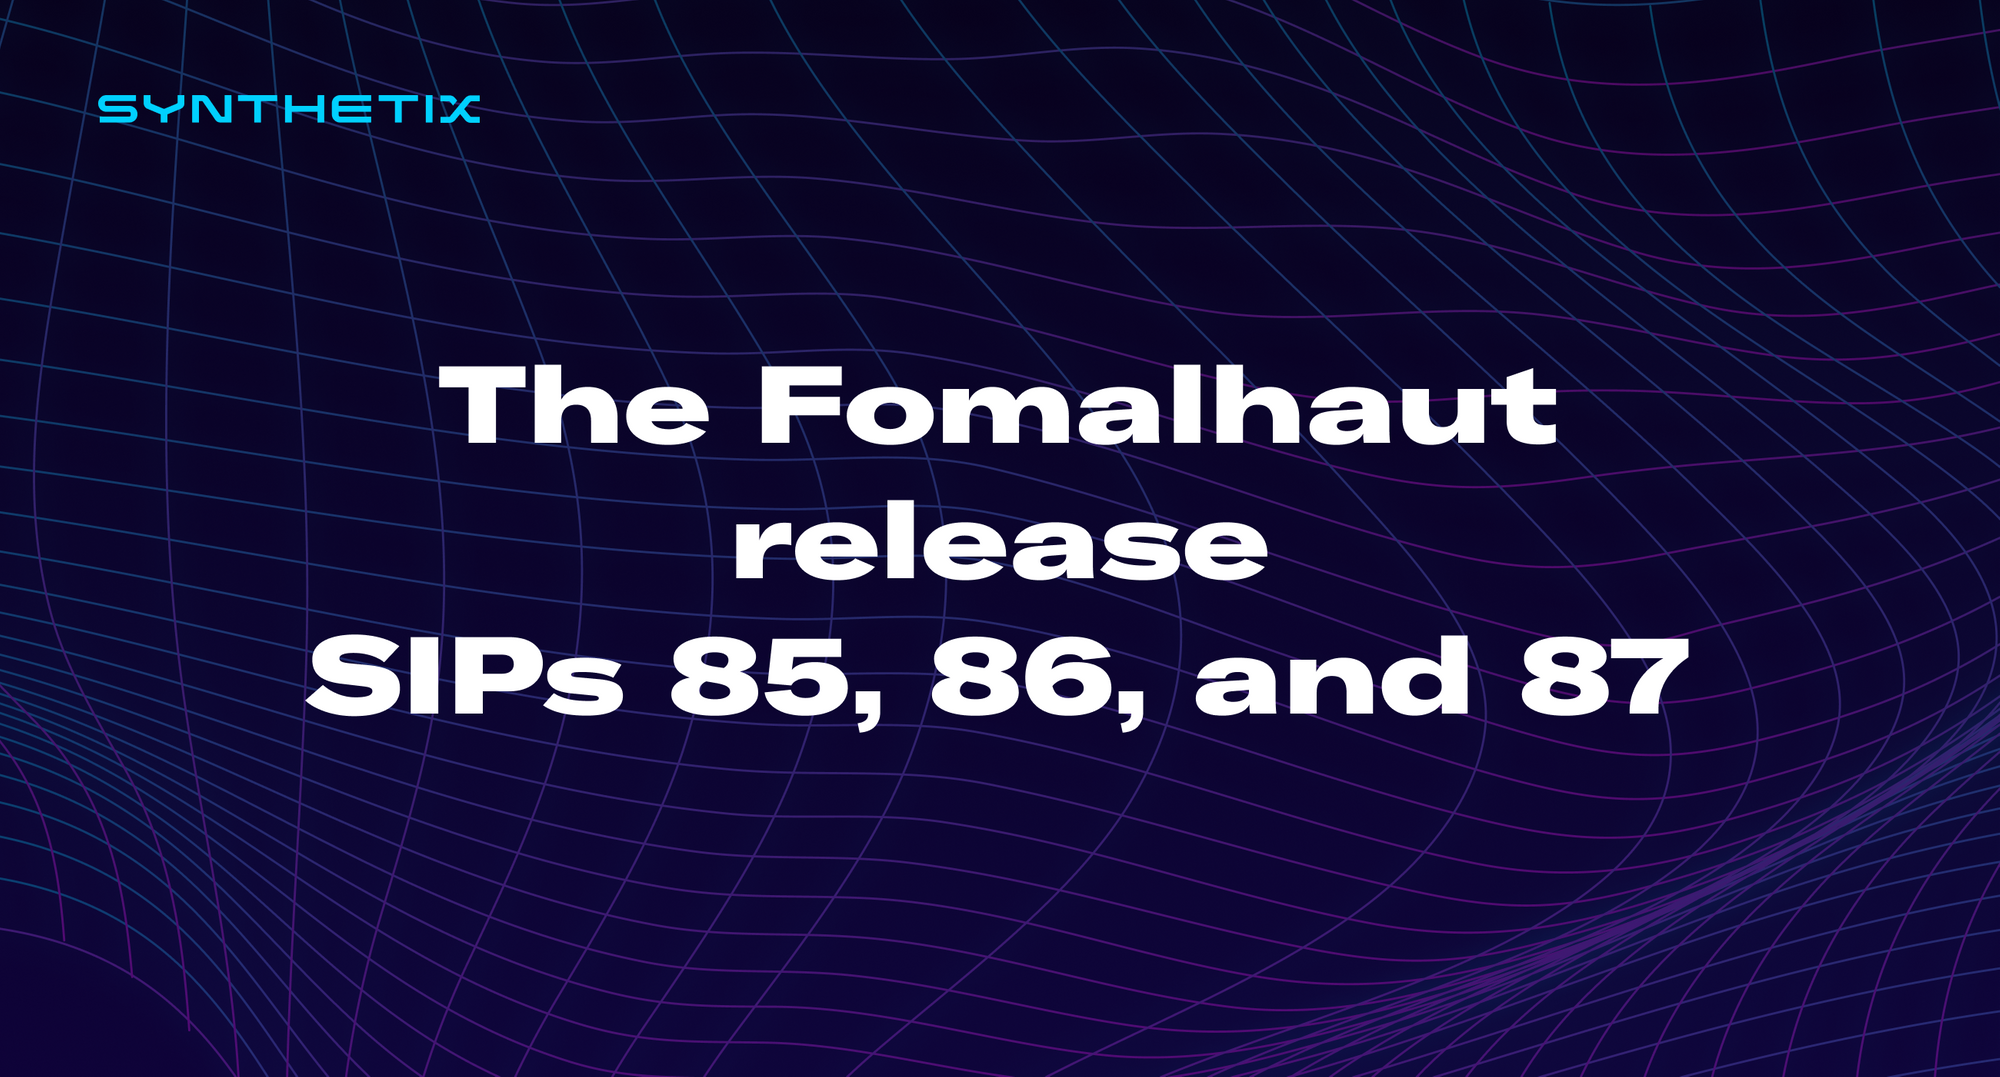 The Fomalhaut release